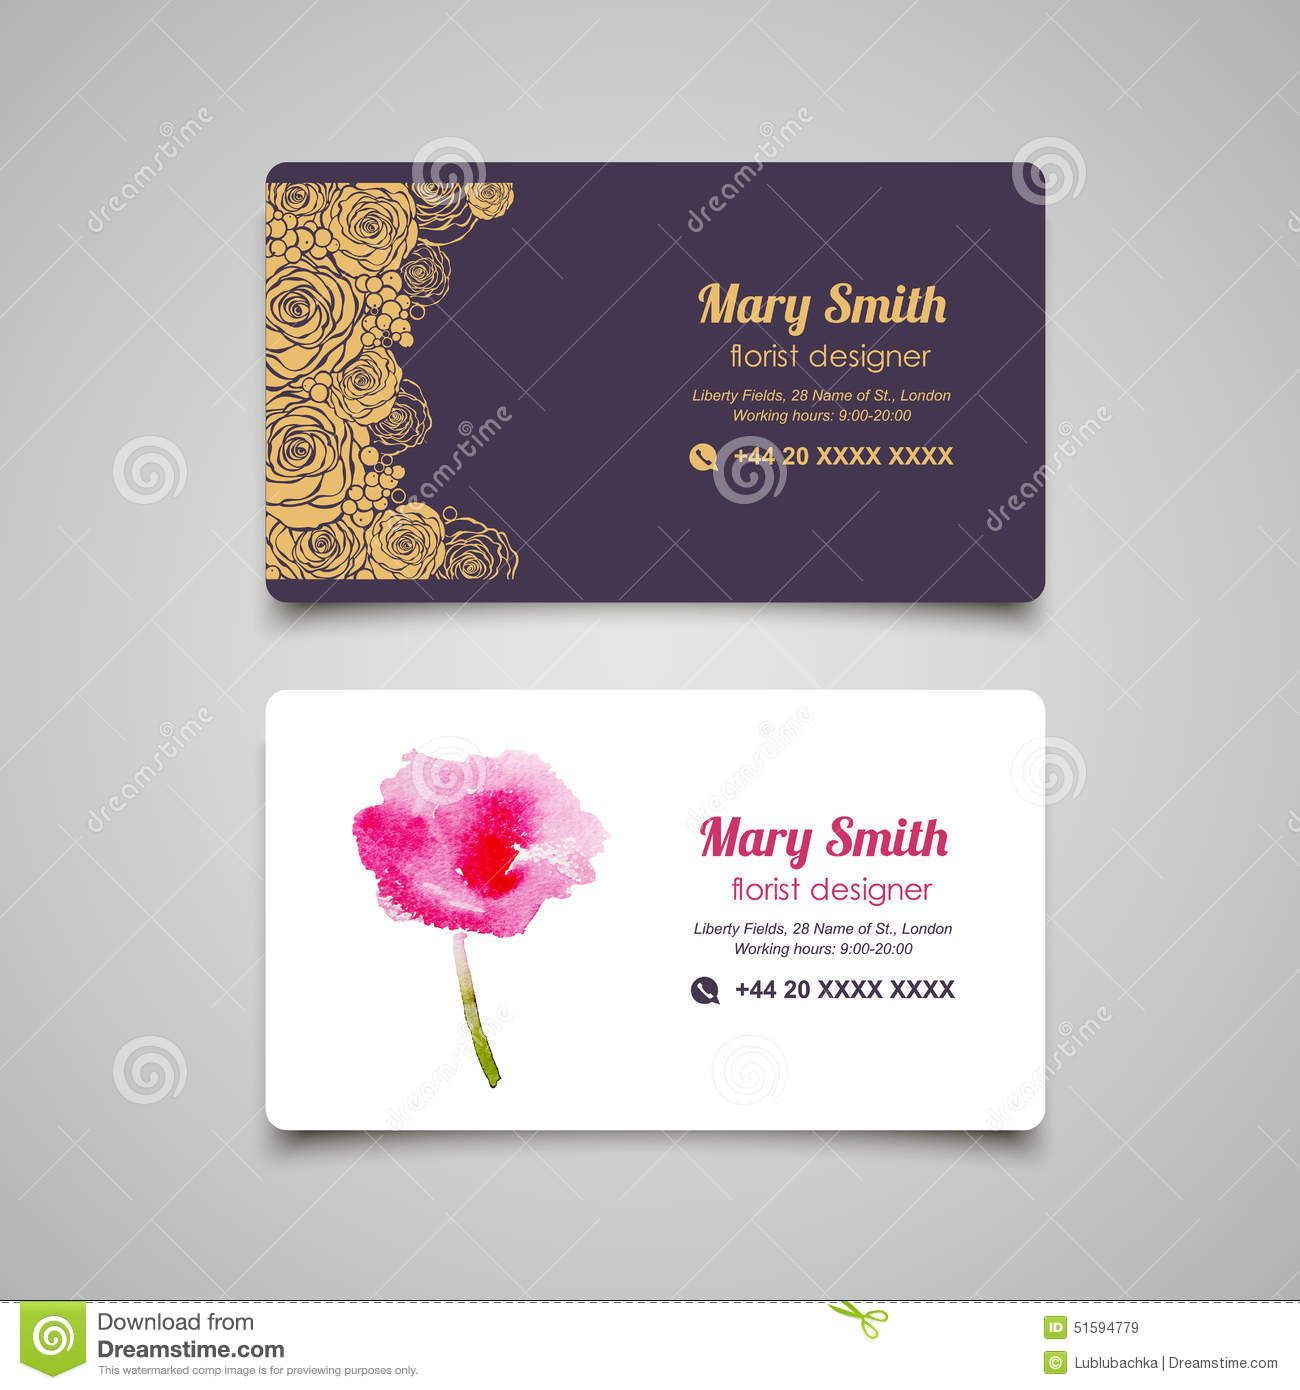 Florist-business-card-vector-design-templates-set-51594779